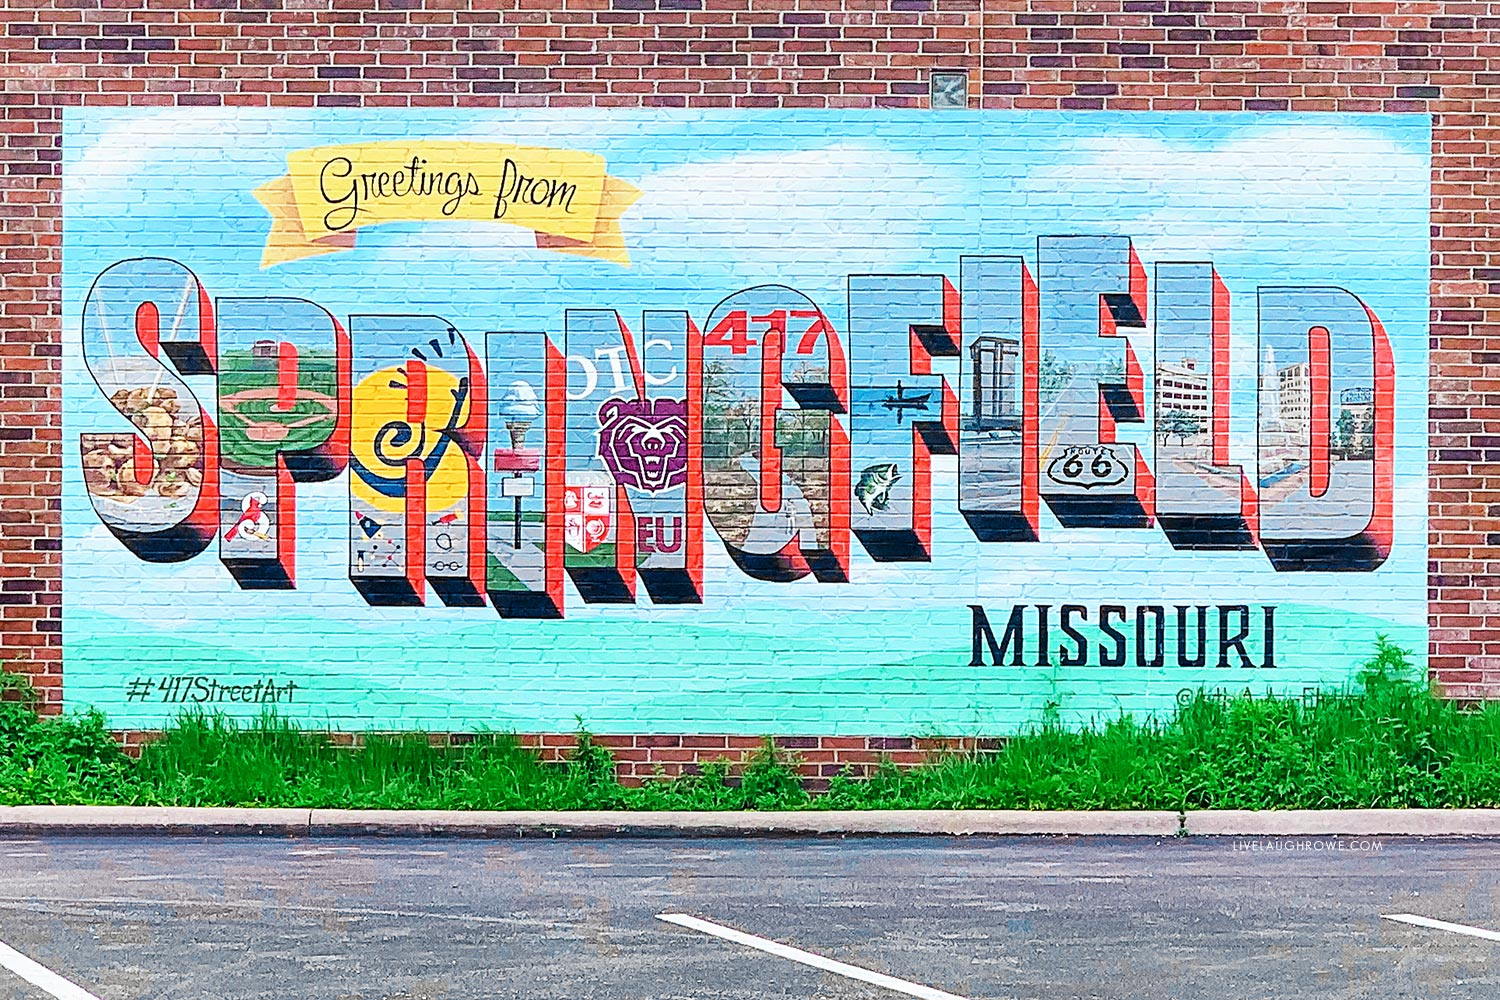 City Guide for Springfield Missouri